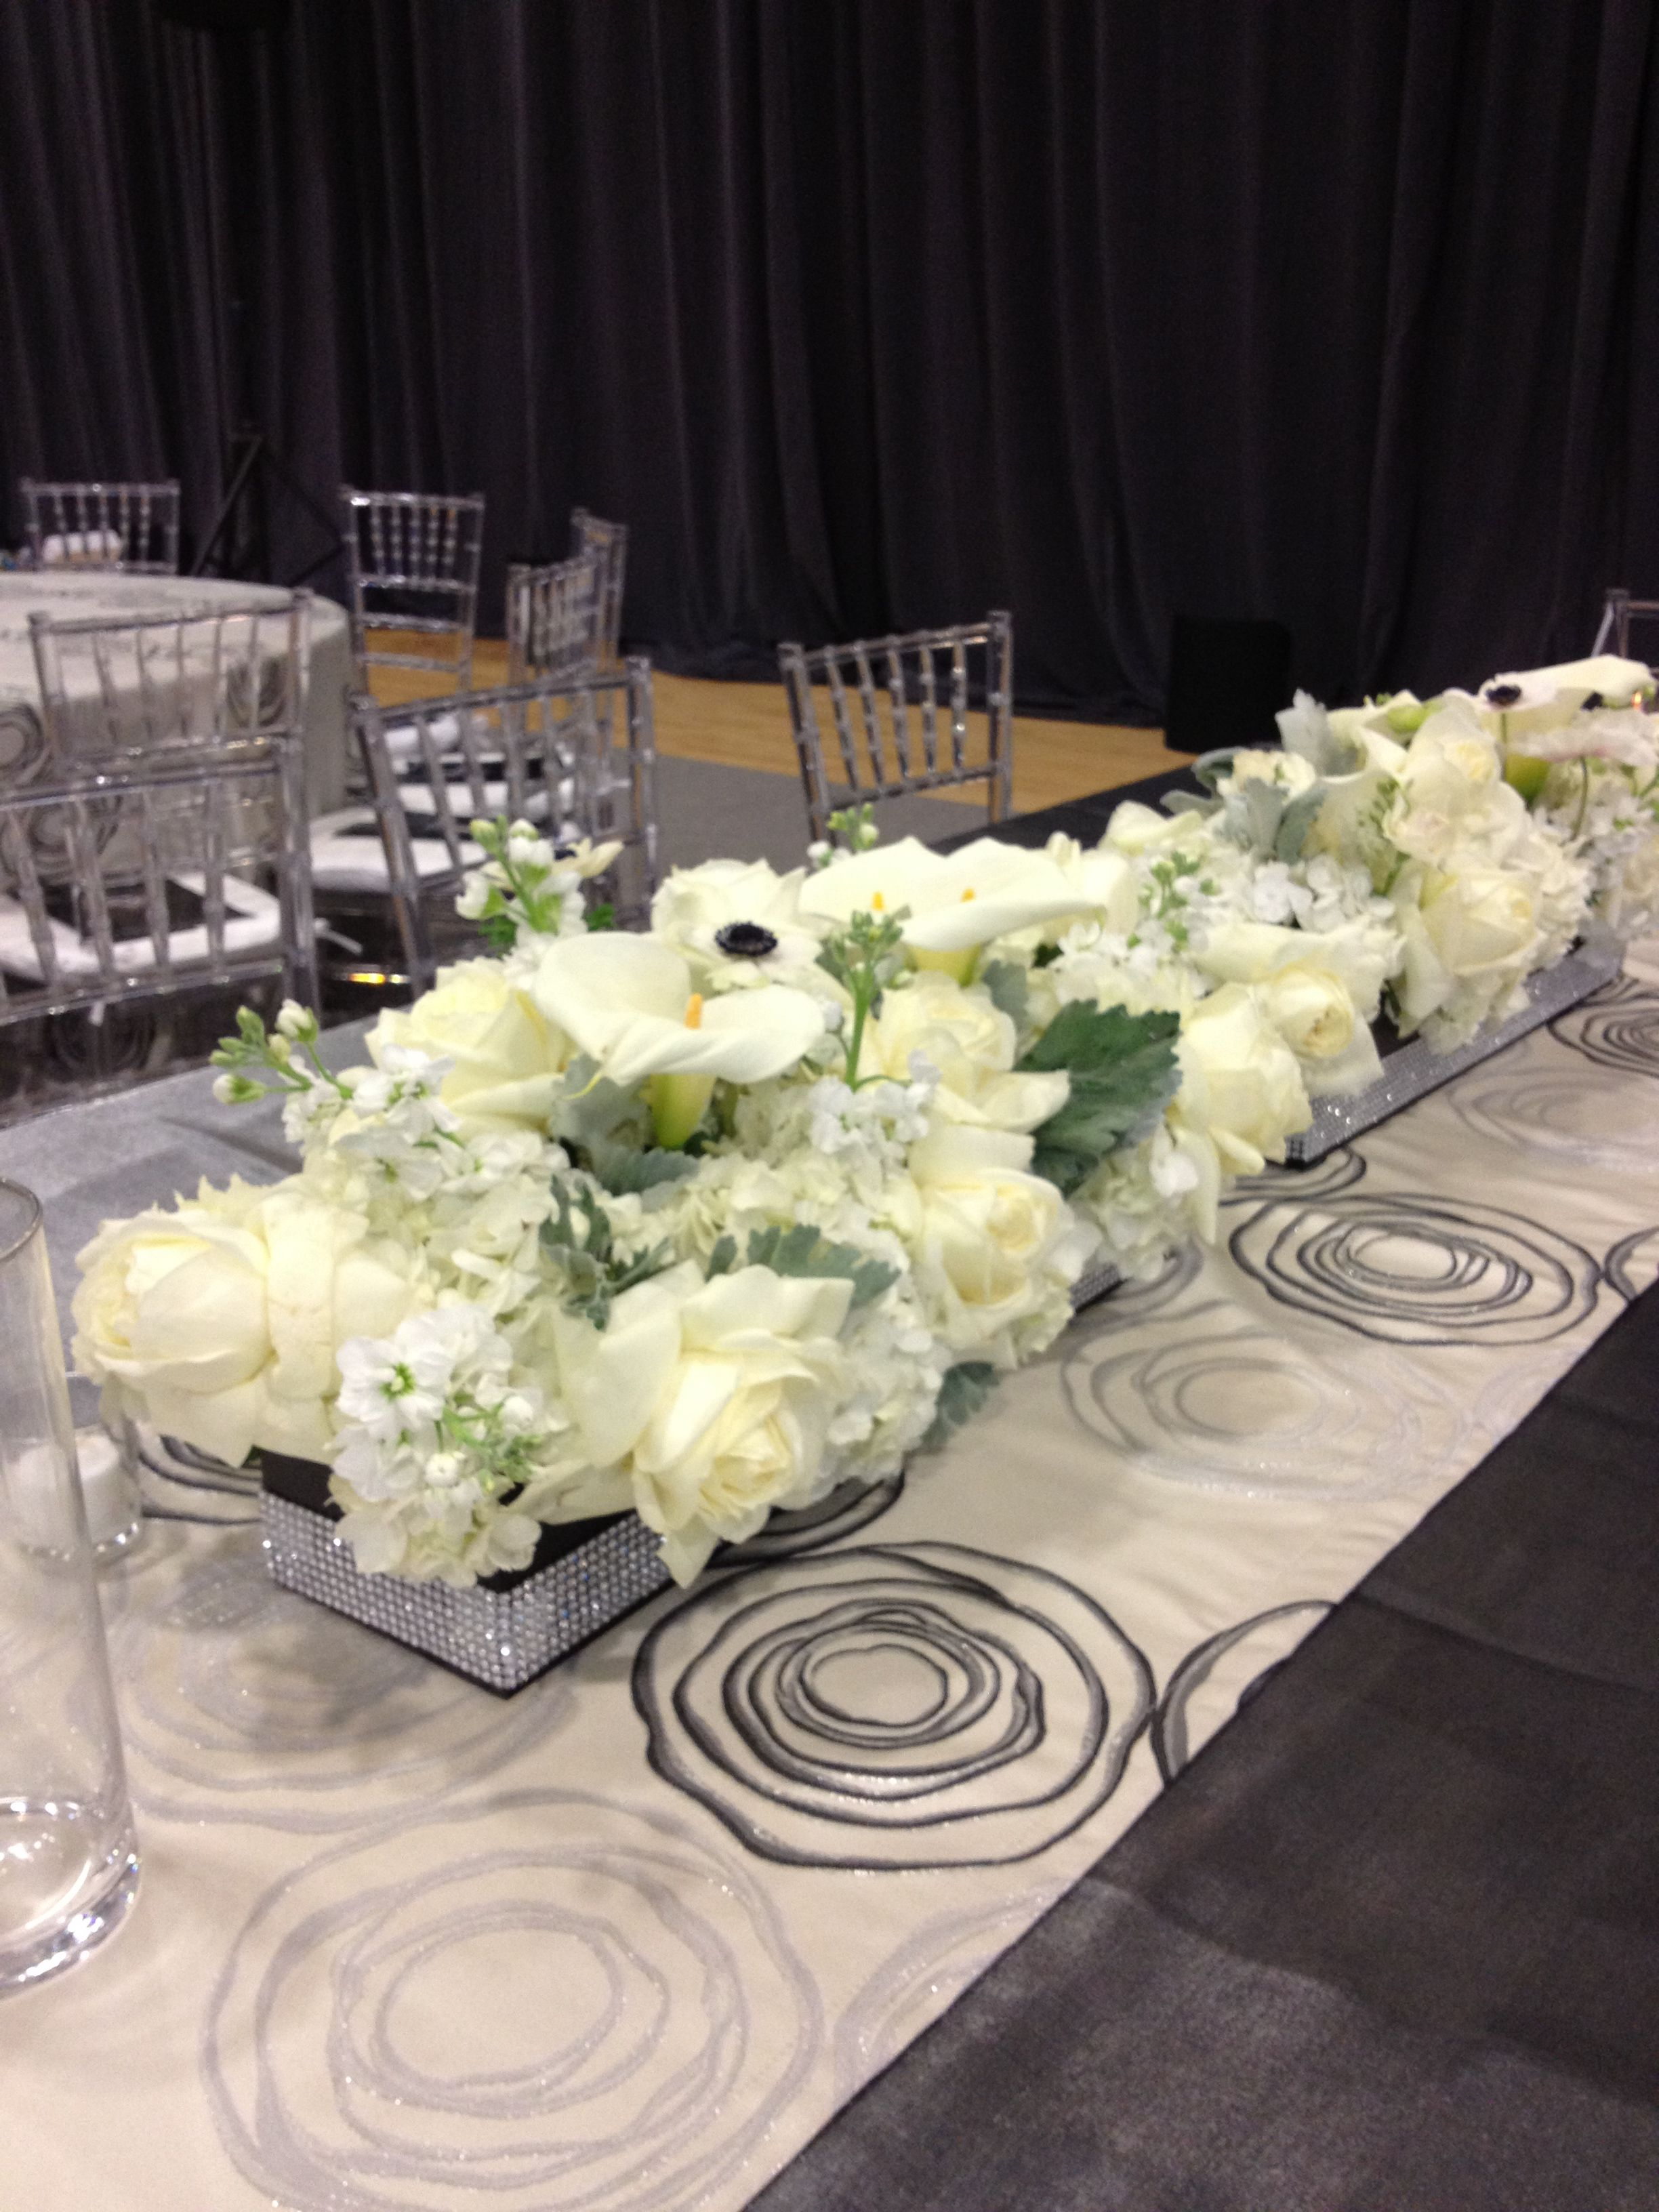 All white floral centerpiece in a rectangle box with